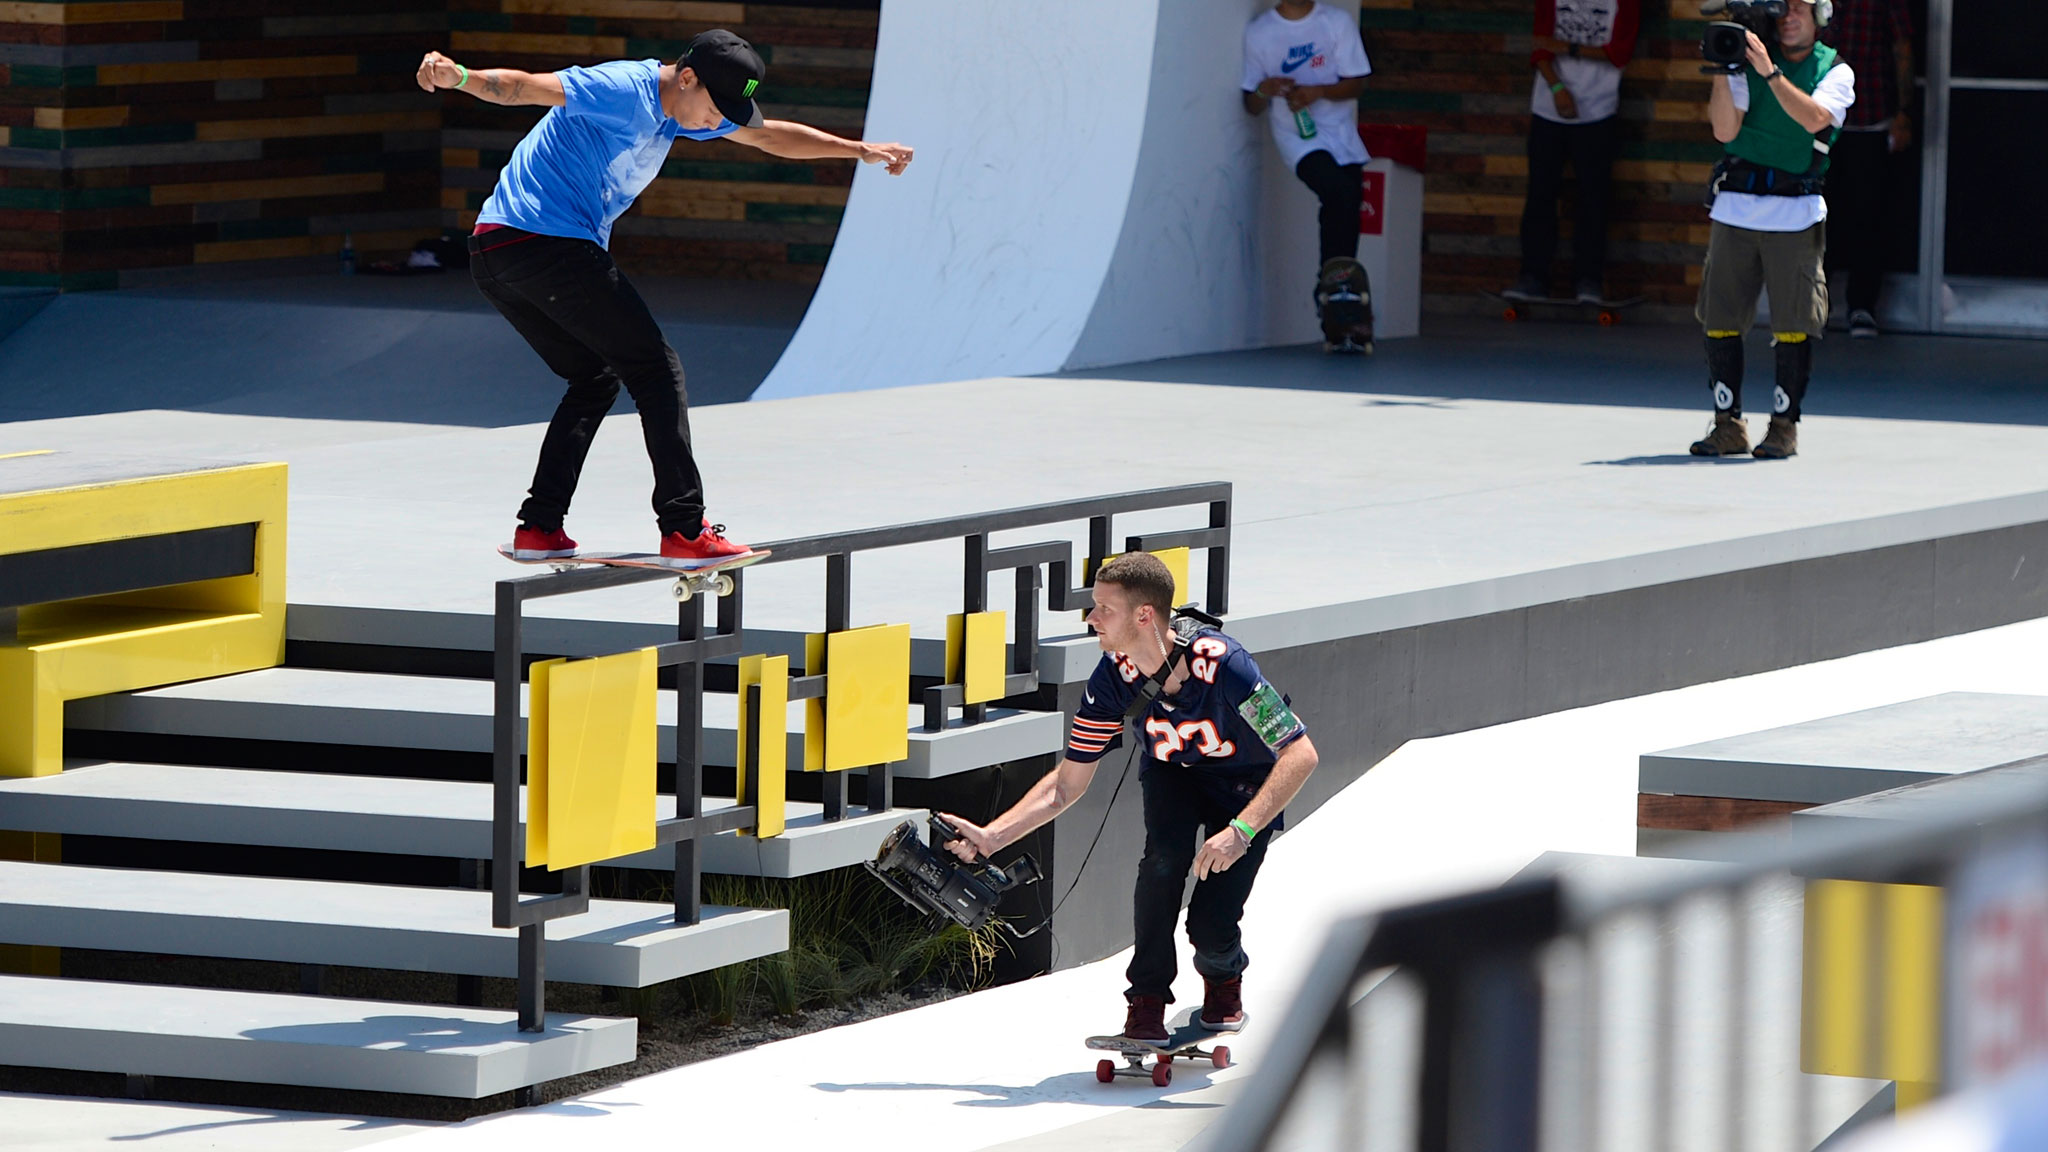 5. Year of Nyjah Huston